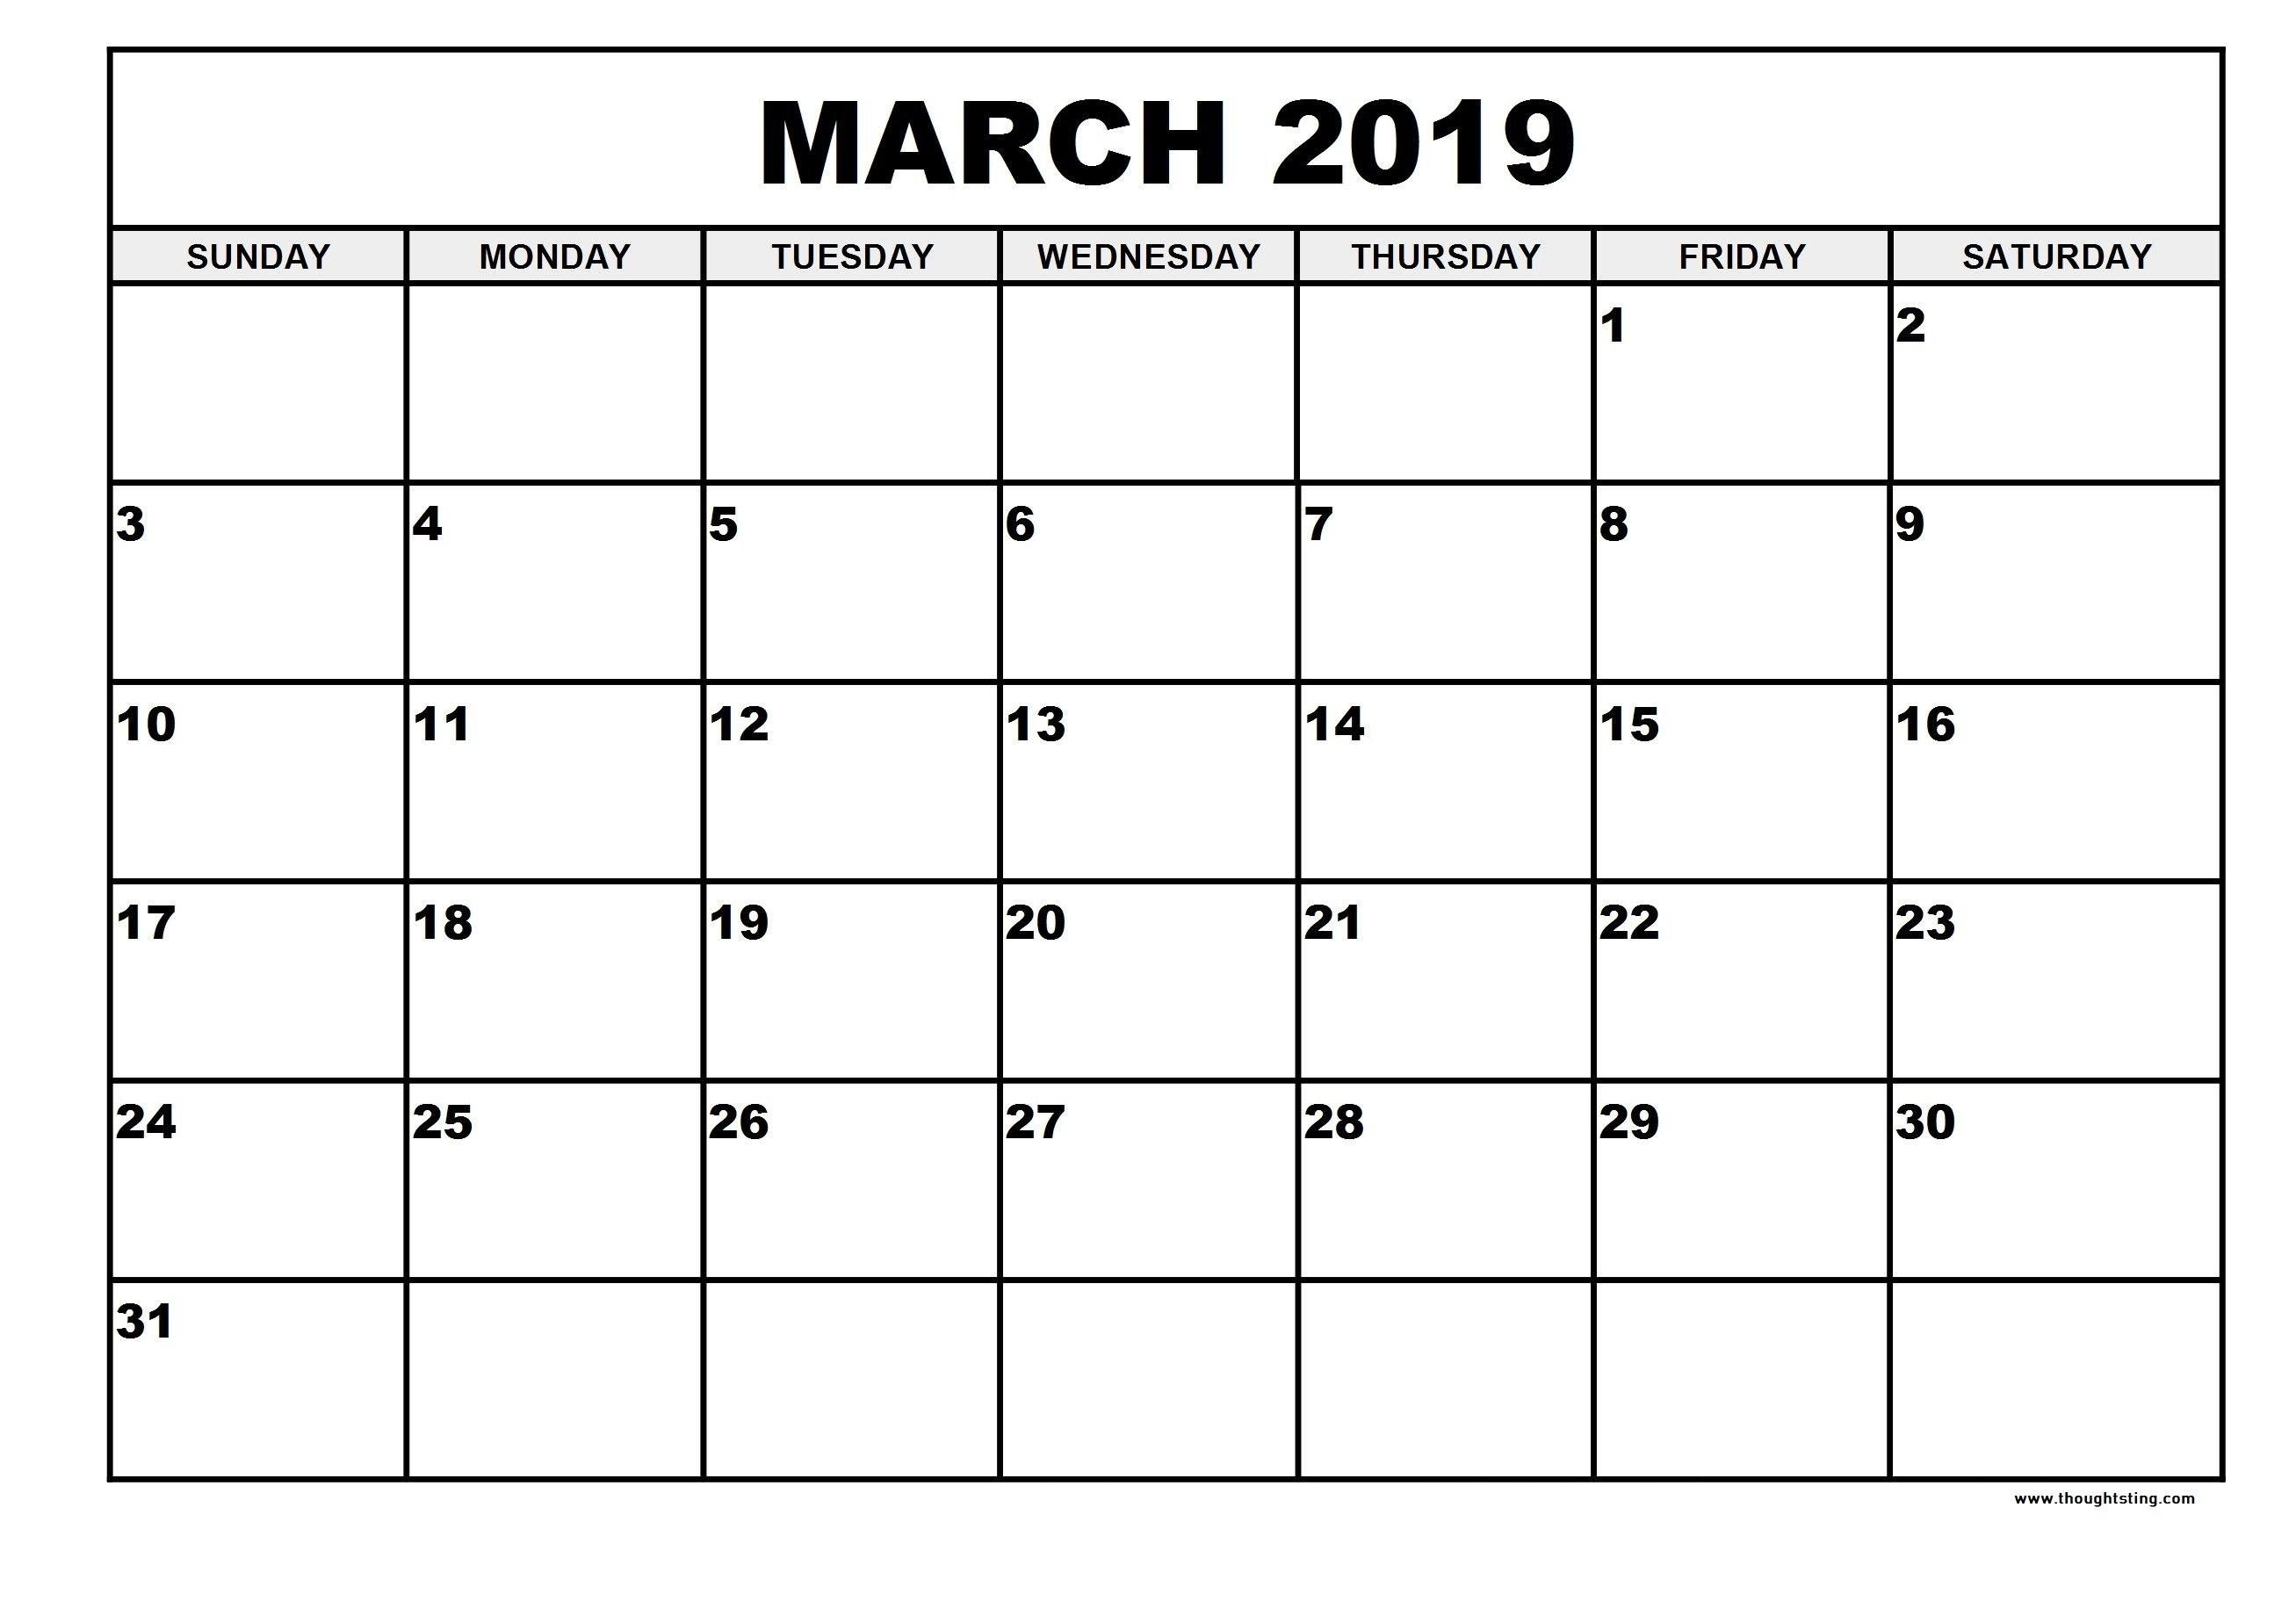 Free Printable March 2019 Calendar Portrait, Landscape - Free March 1 2019 Calendar